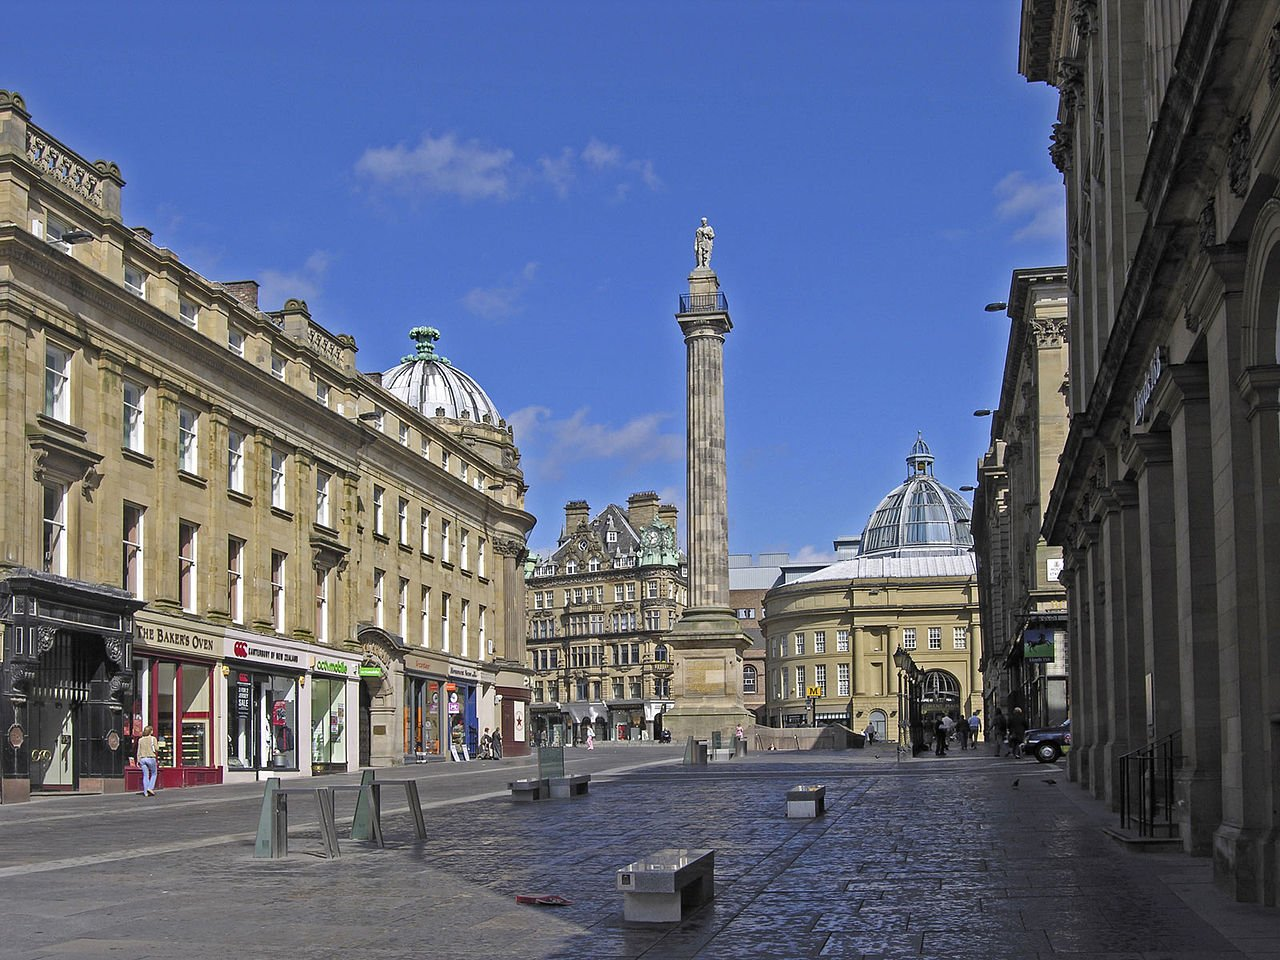 Newcastle upon Tyne, England, Best places to visit in the UK